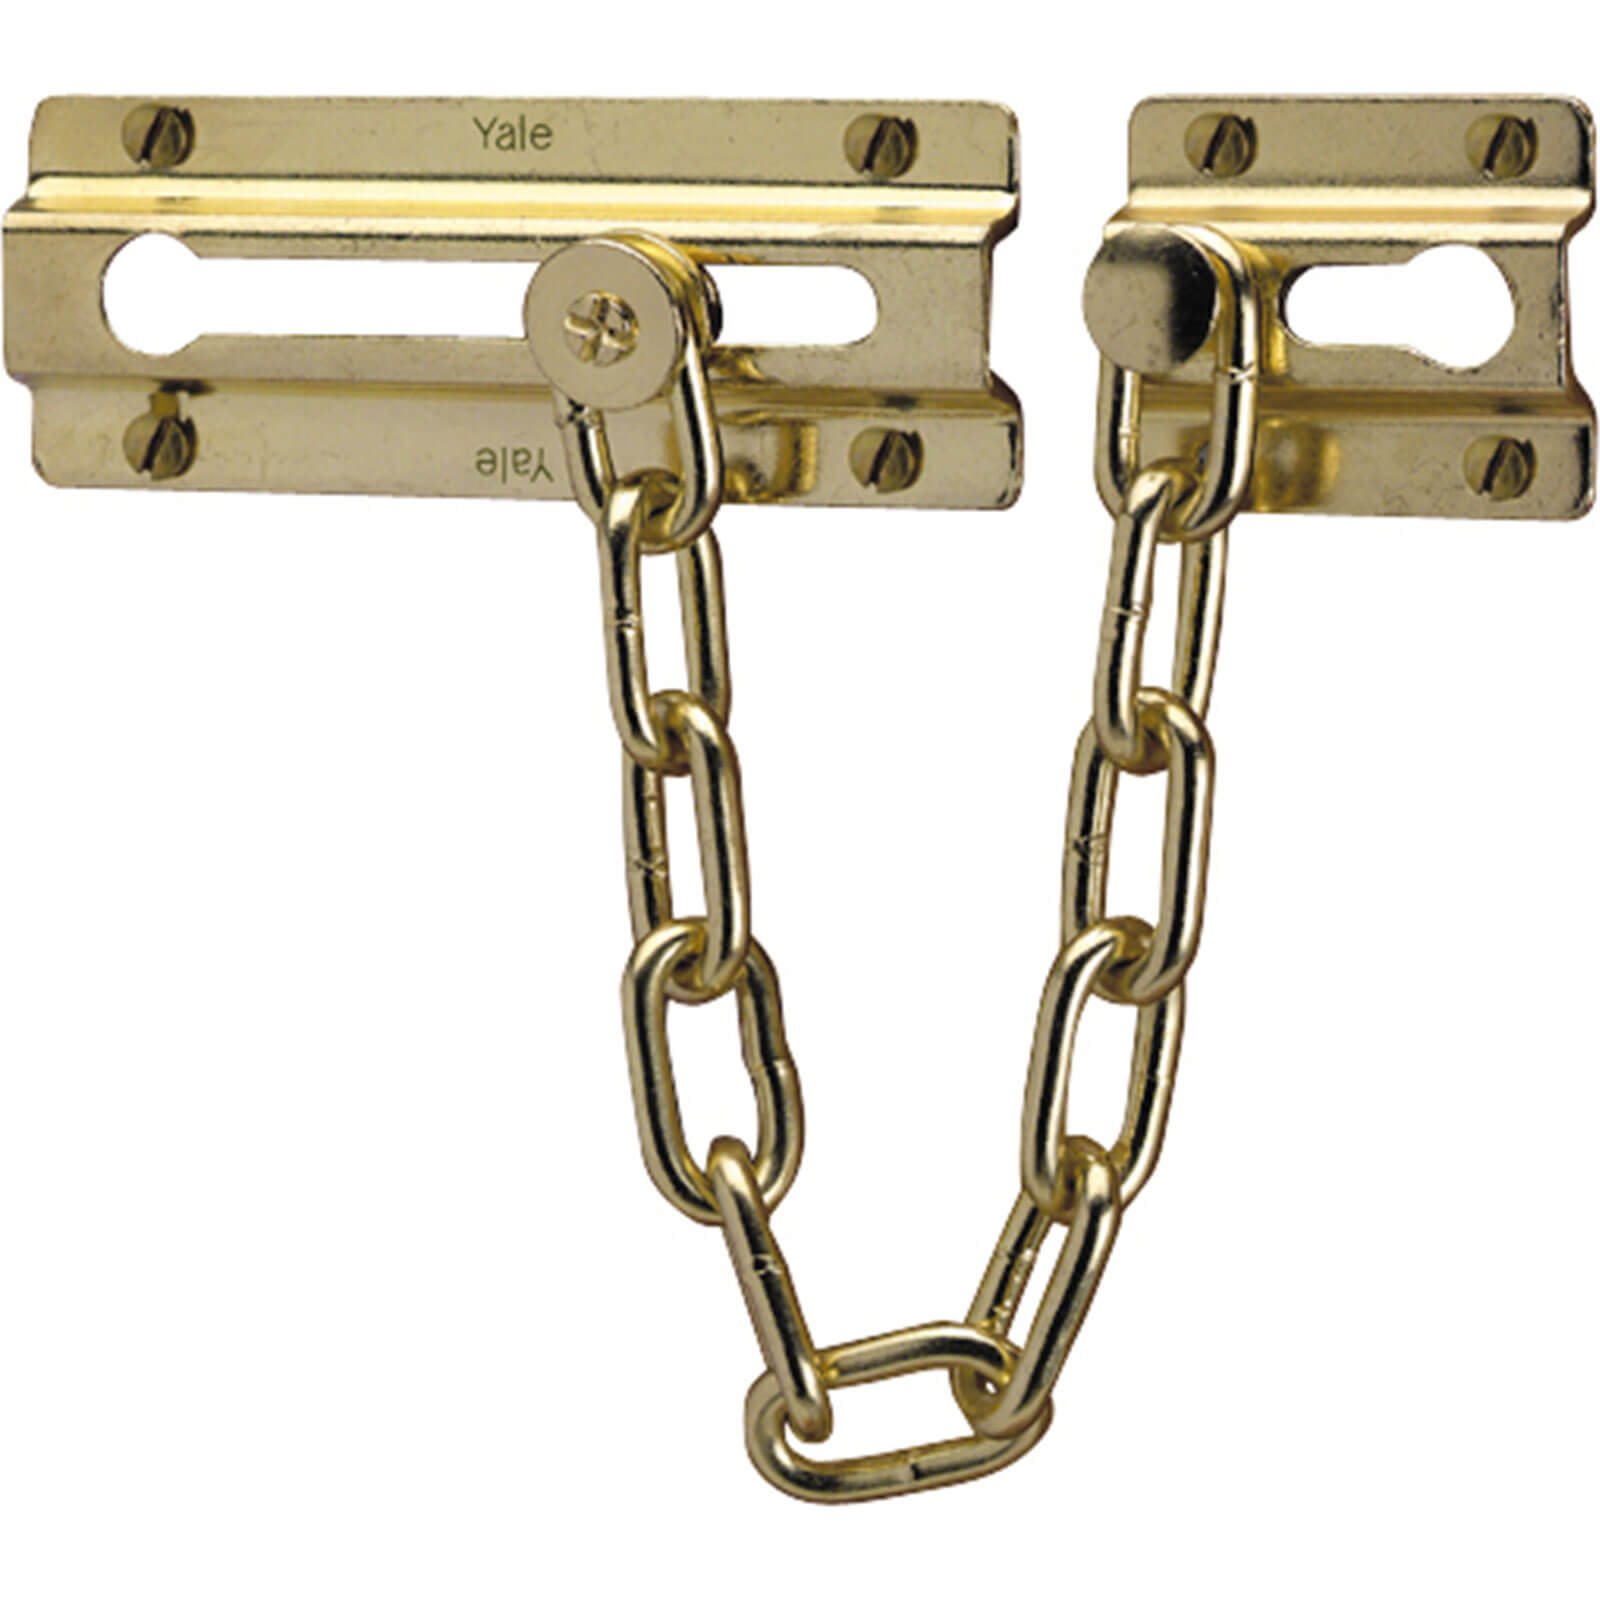 Image of Yale P1037 Door Chain Chrome Finish